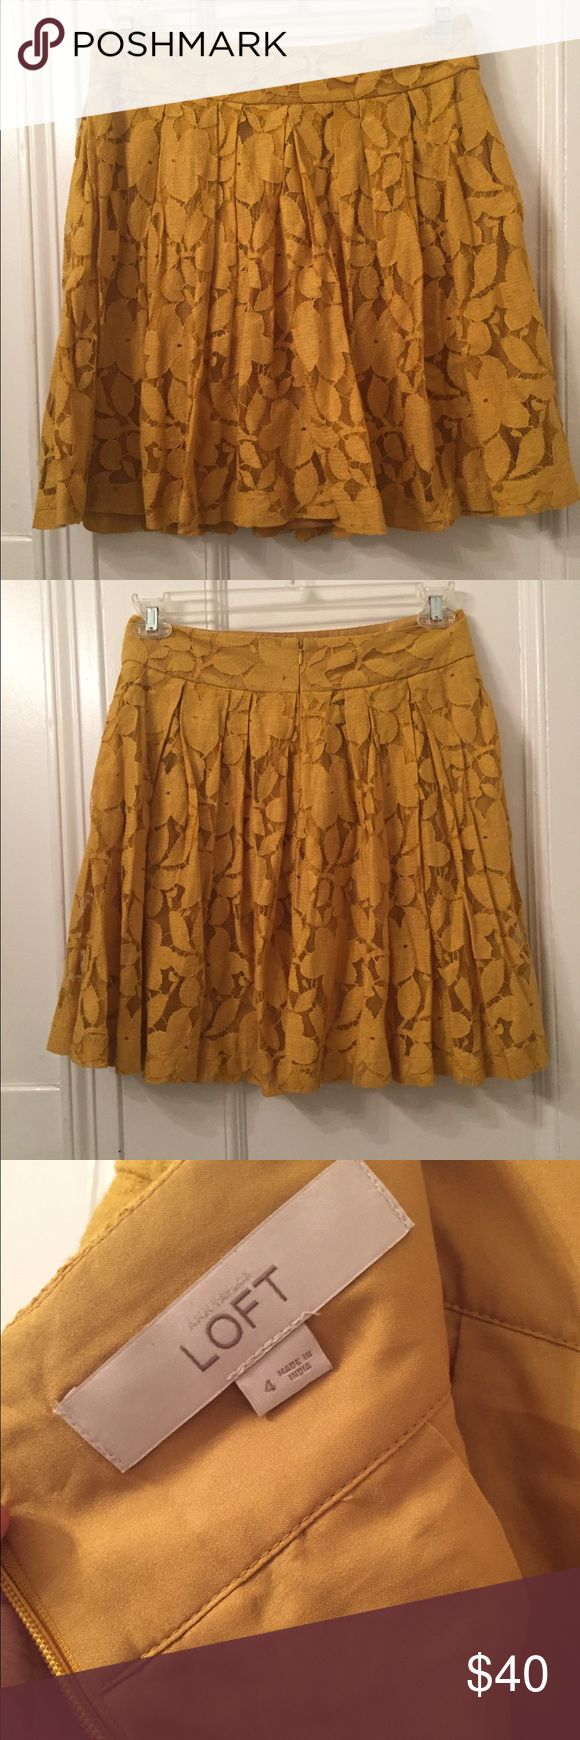 Loft Flower Lace Pleated Skirt Mustard Yellow 4 Mustard yellow Lace pleated skirt with flower pattern. Looks great with a chambray shirt and sandals or boots. Zipper back. LOFT Skirts Circle & Skater